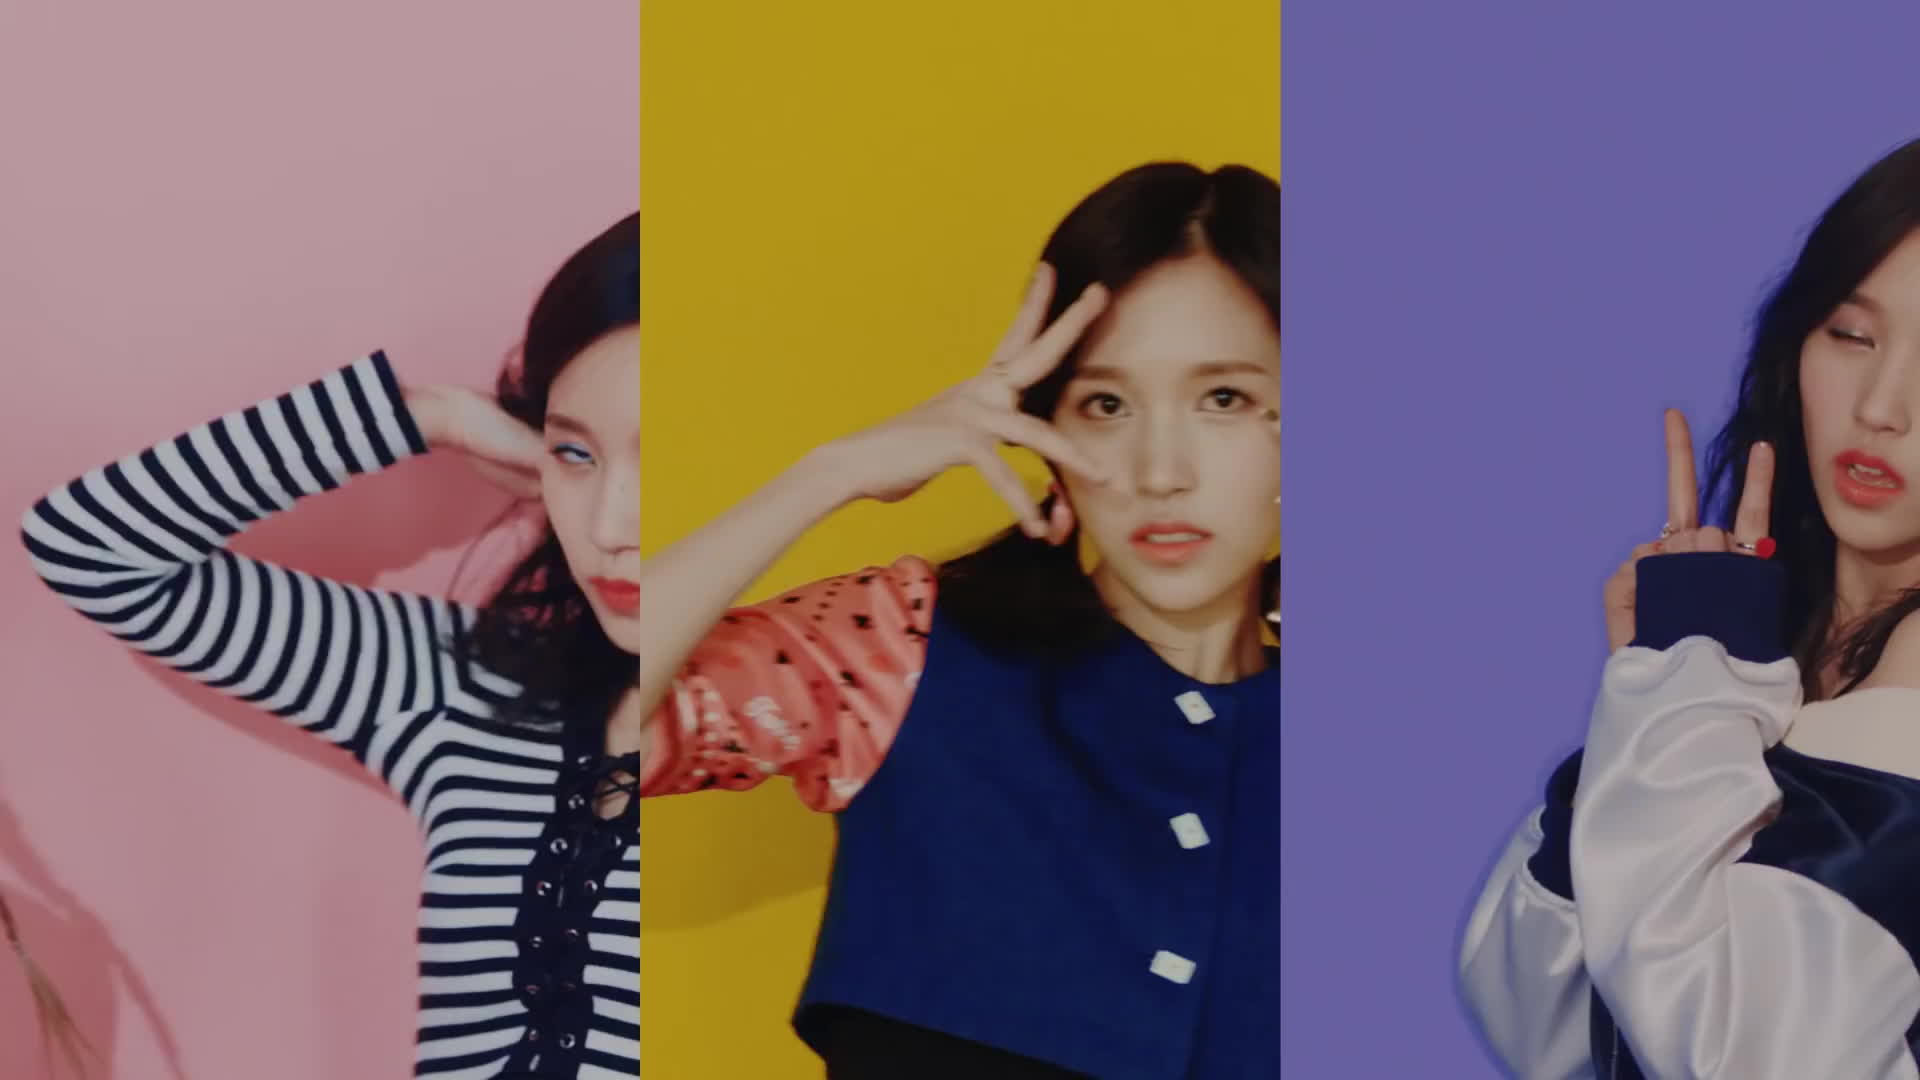 Twice, kpop, mina, twice knock knock, 트와이스 낙낙, Mina Twice Knock Knock Triple GIFs